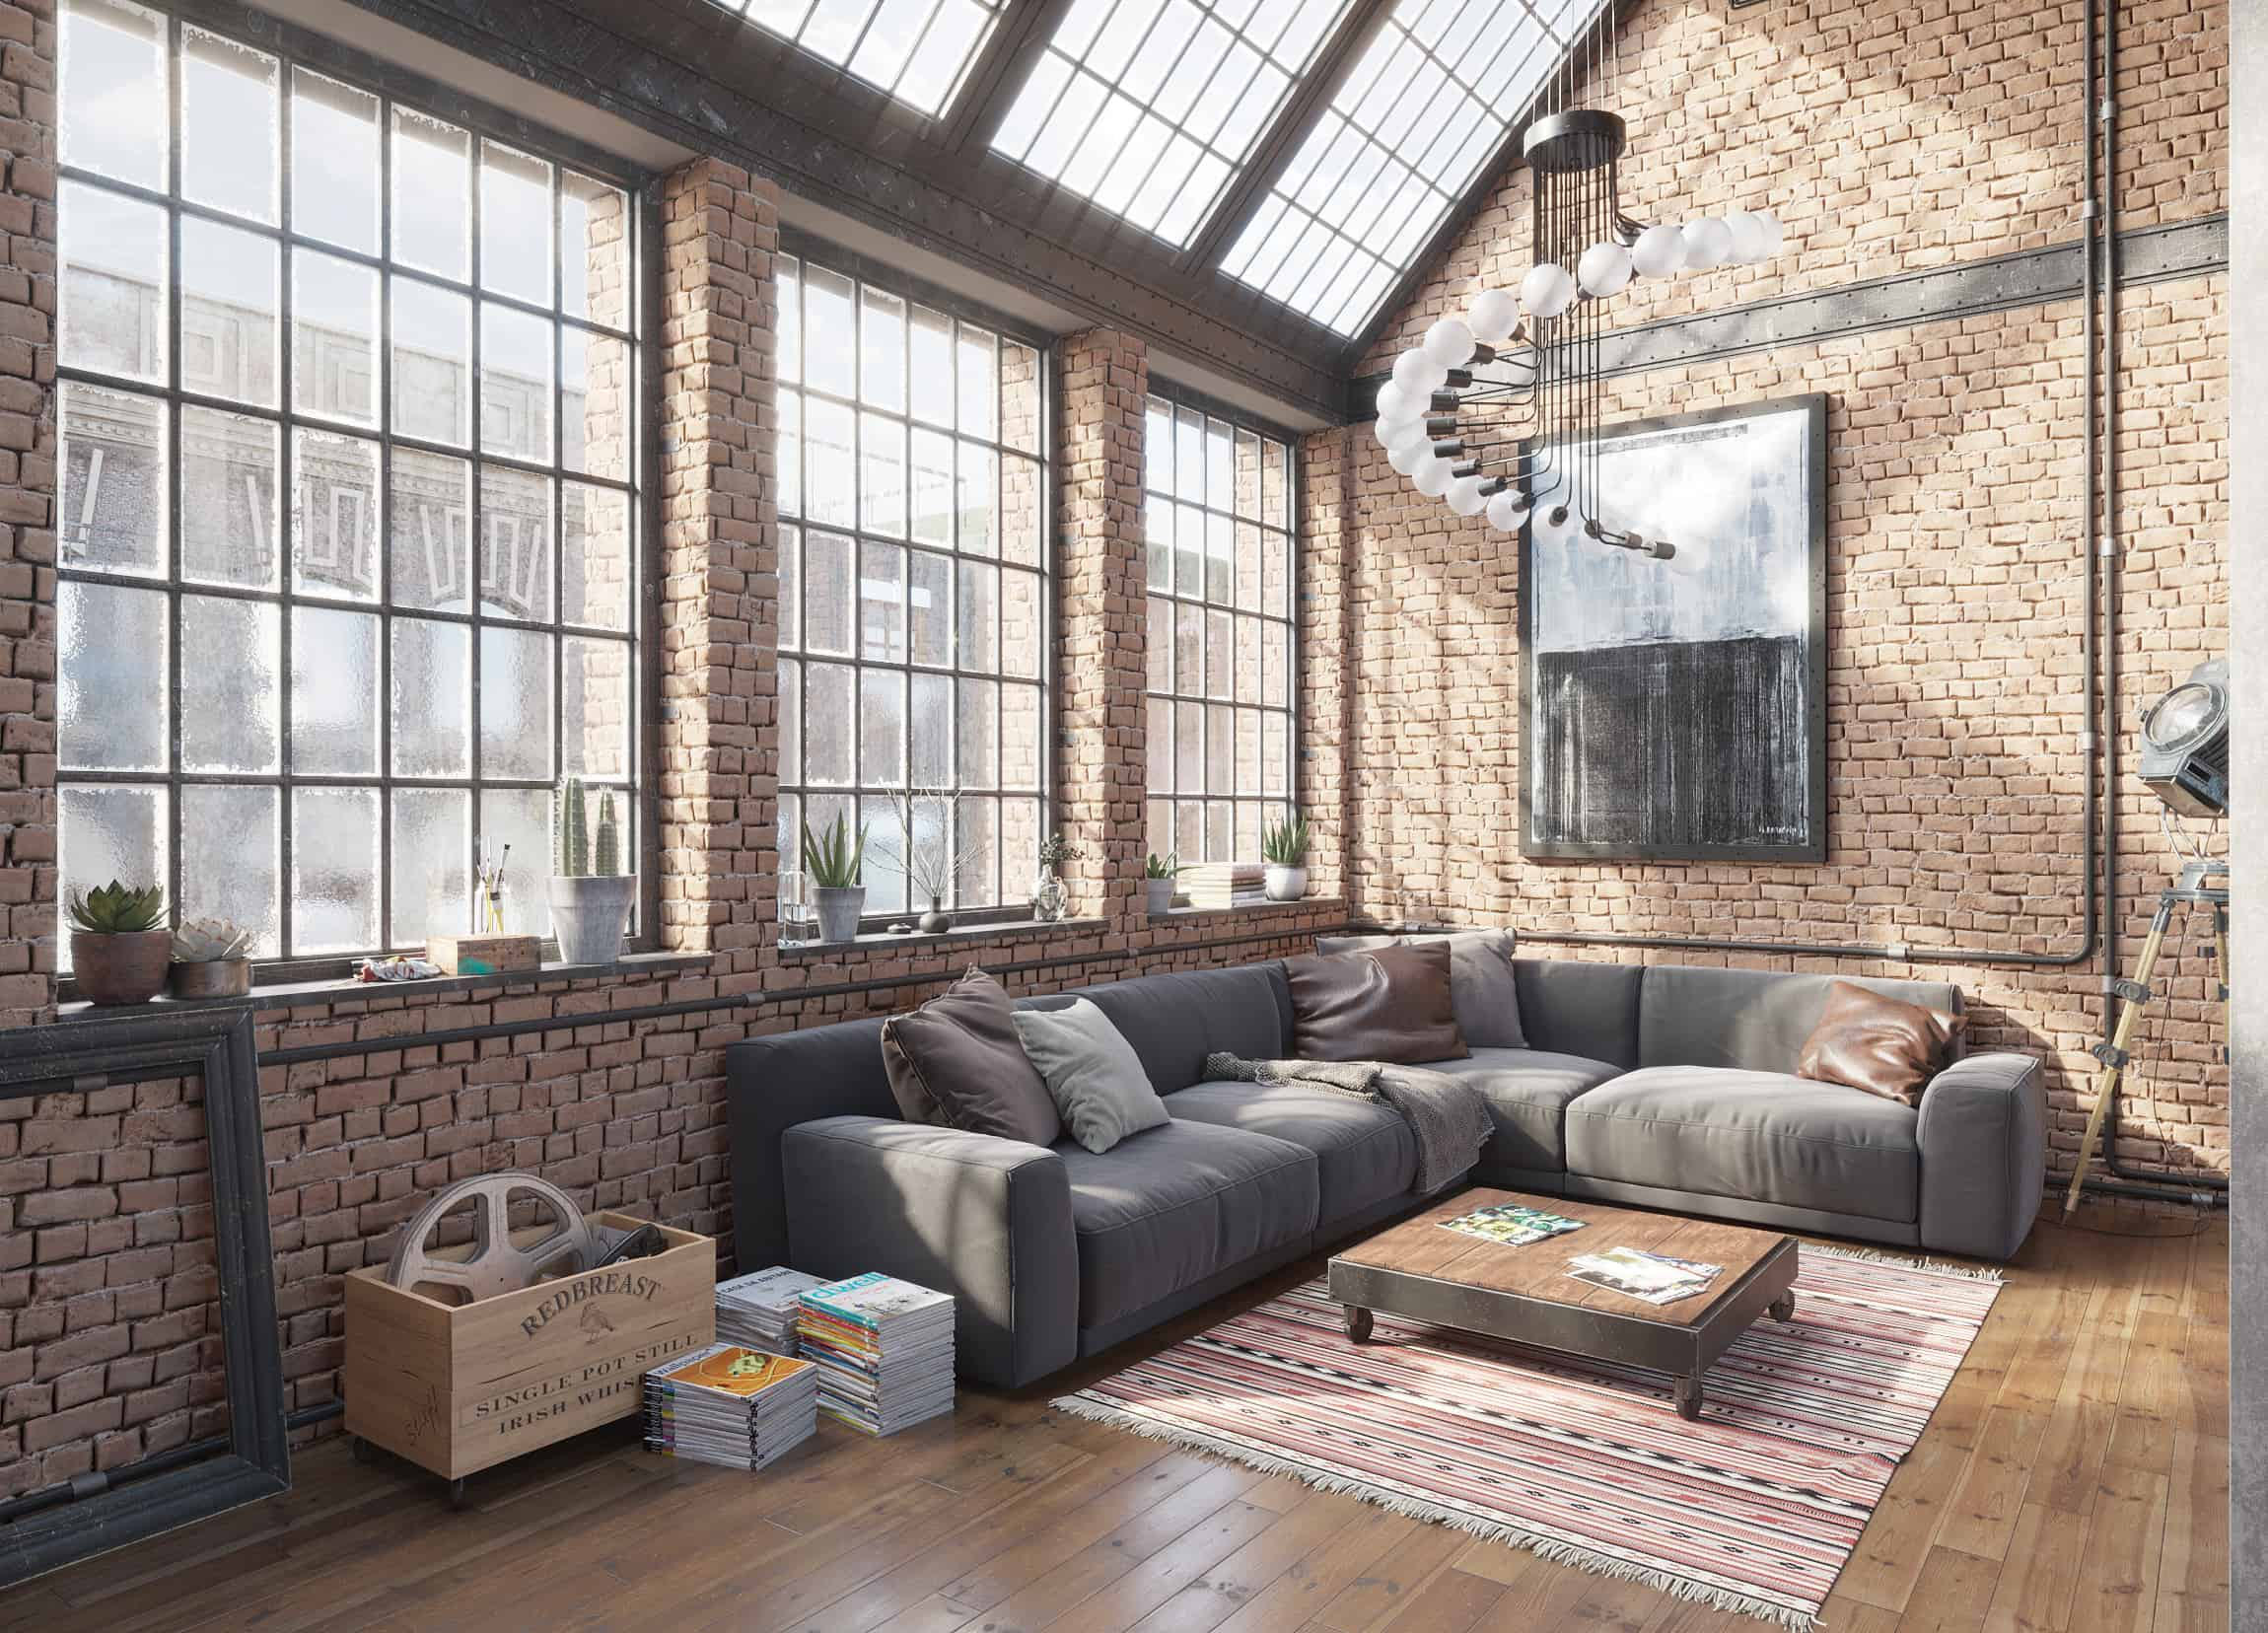 Merveilleux The Main Goal Was To Achieve Connection Between Rough Industrial Look And  Home Cosiness.I Wanted That A Person Who Was In This Interior Would Feel  Not ...